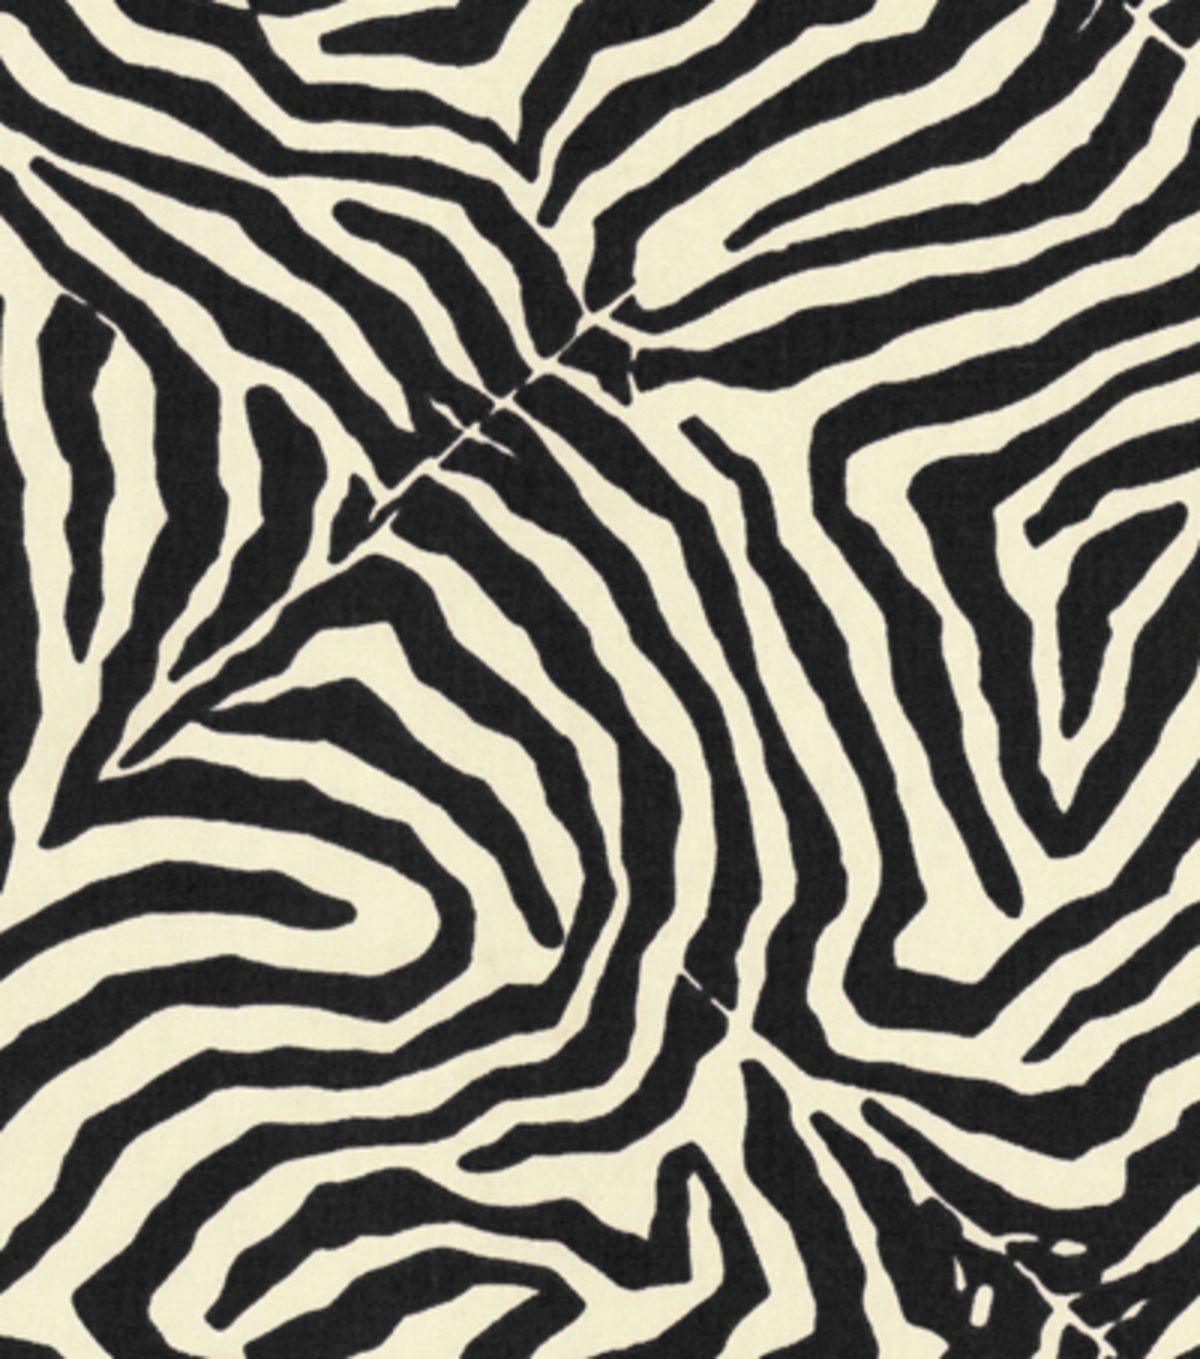 Home Decor 8\u0022x8\u0022 Fabric Swatch-Waverly Wild Life Onyx